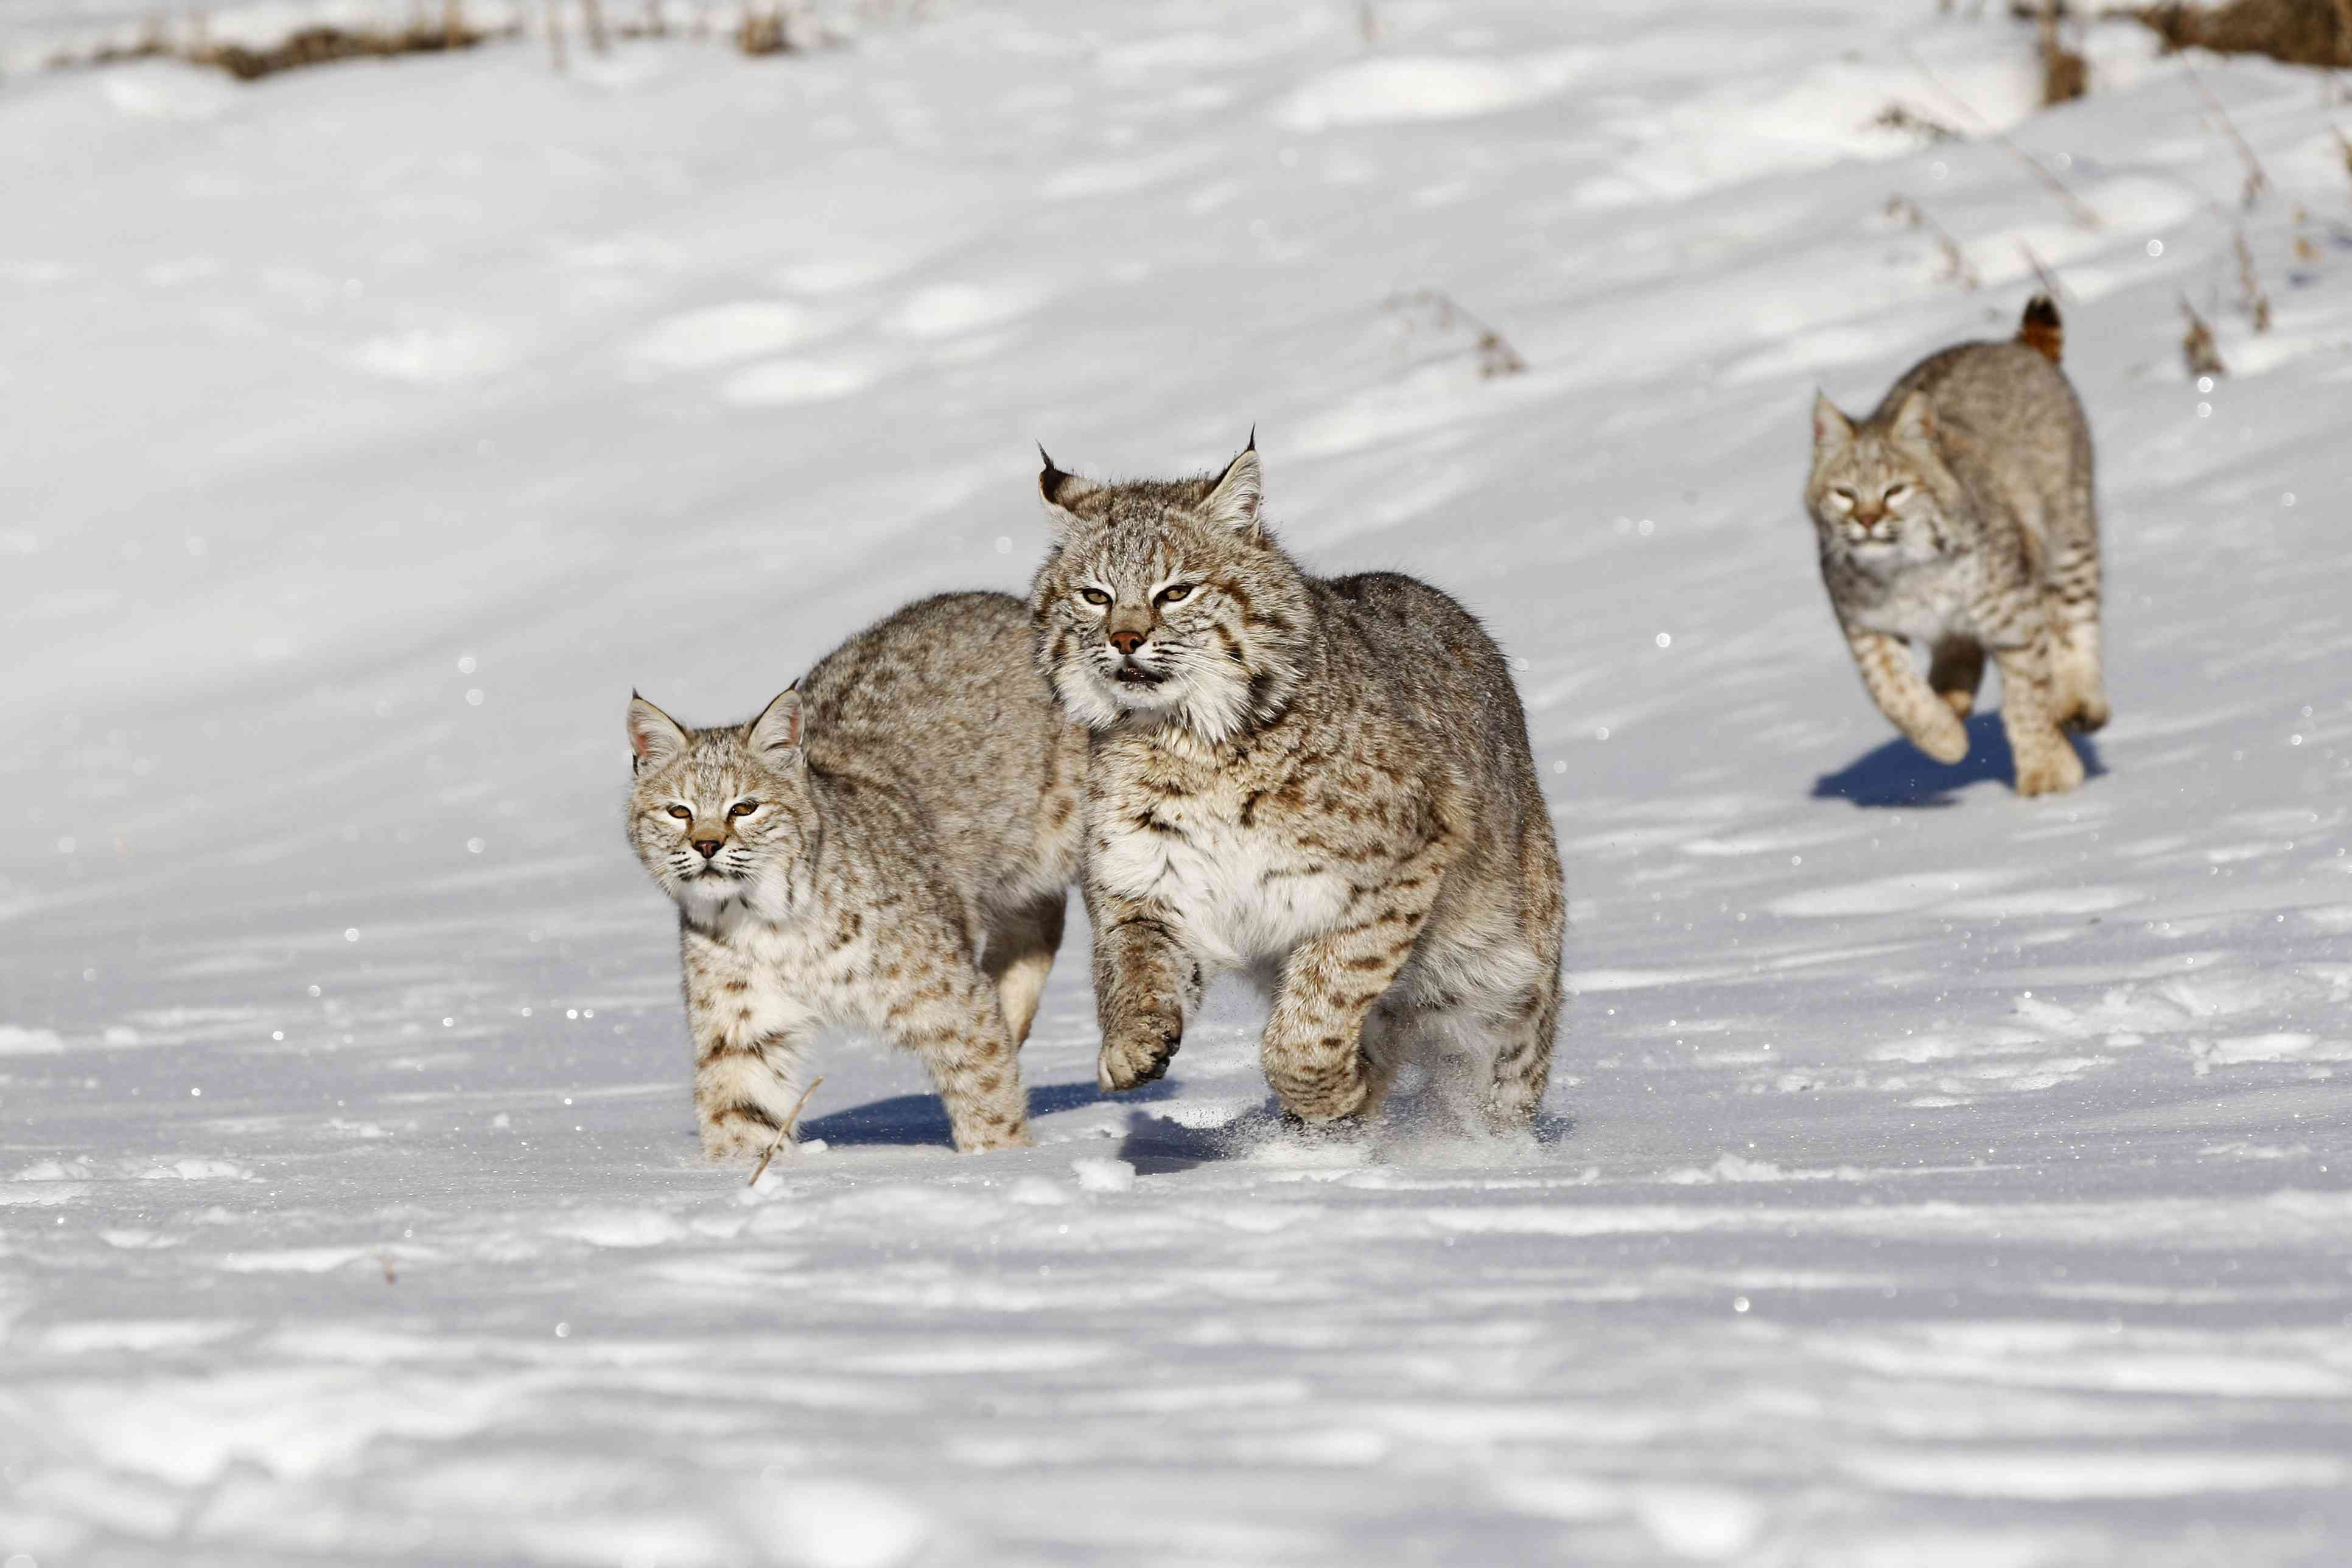 Bobcat (Lynx rufus), adult animal with 2 young subadults in the snow, Montana, USA